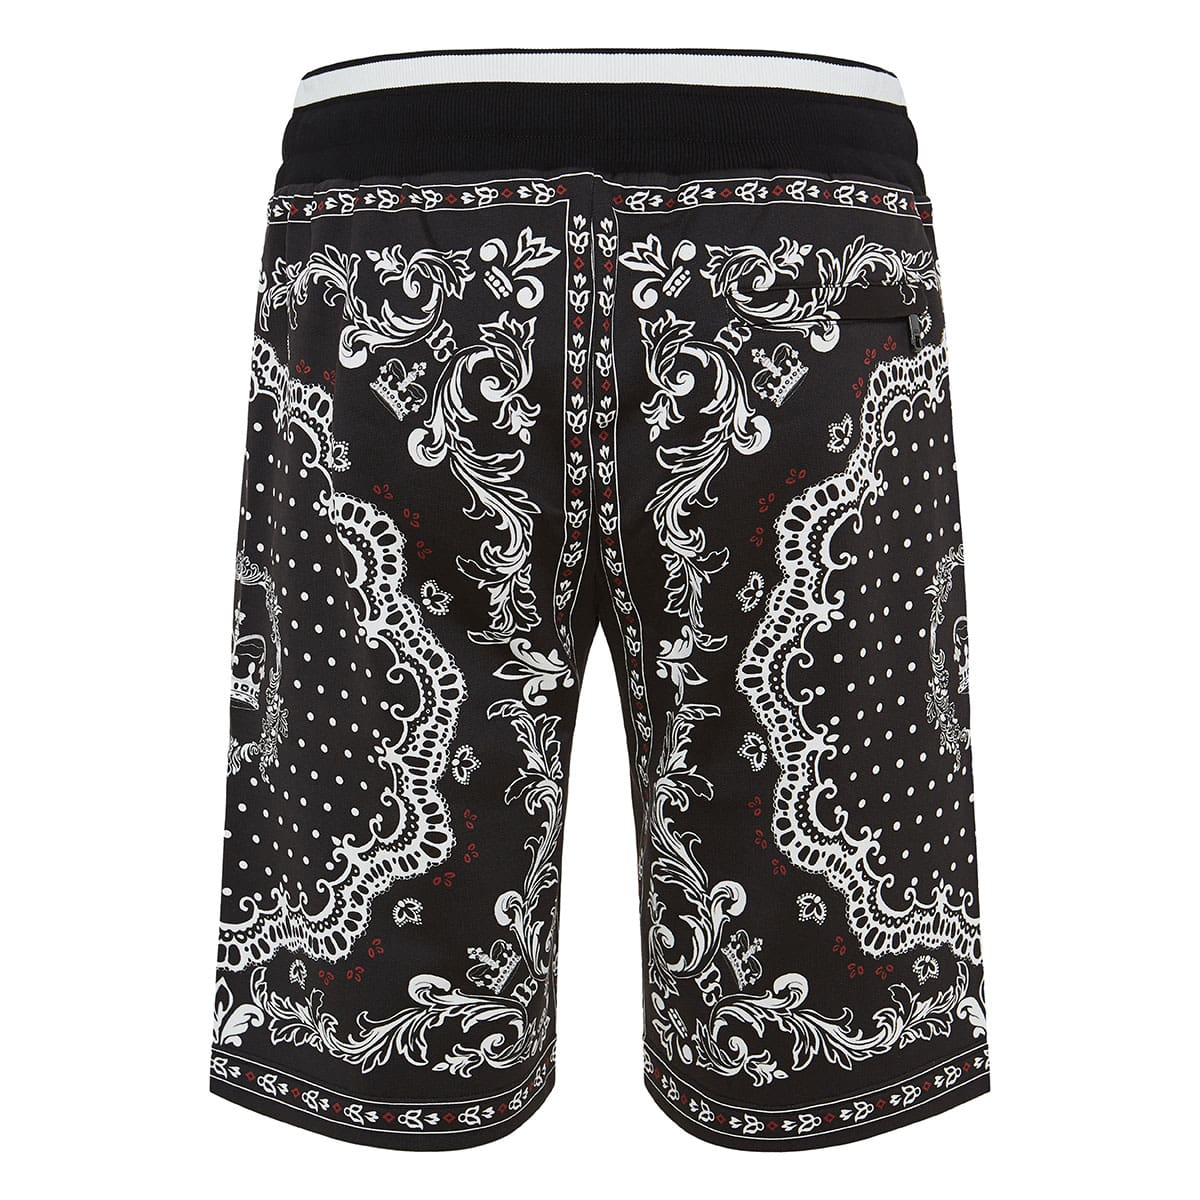 Bandana and Crown printed track shorts